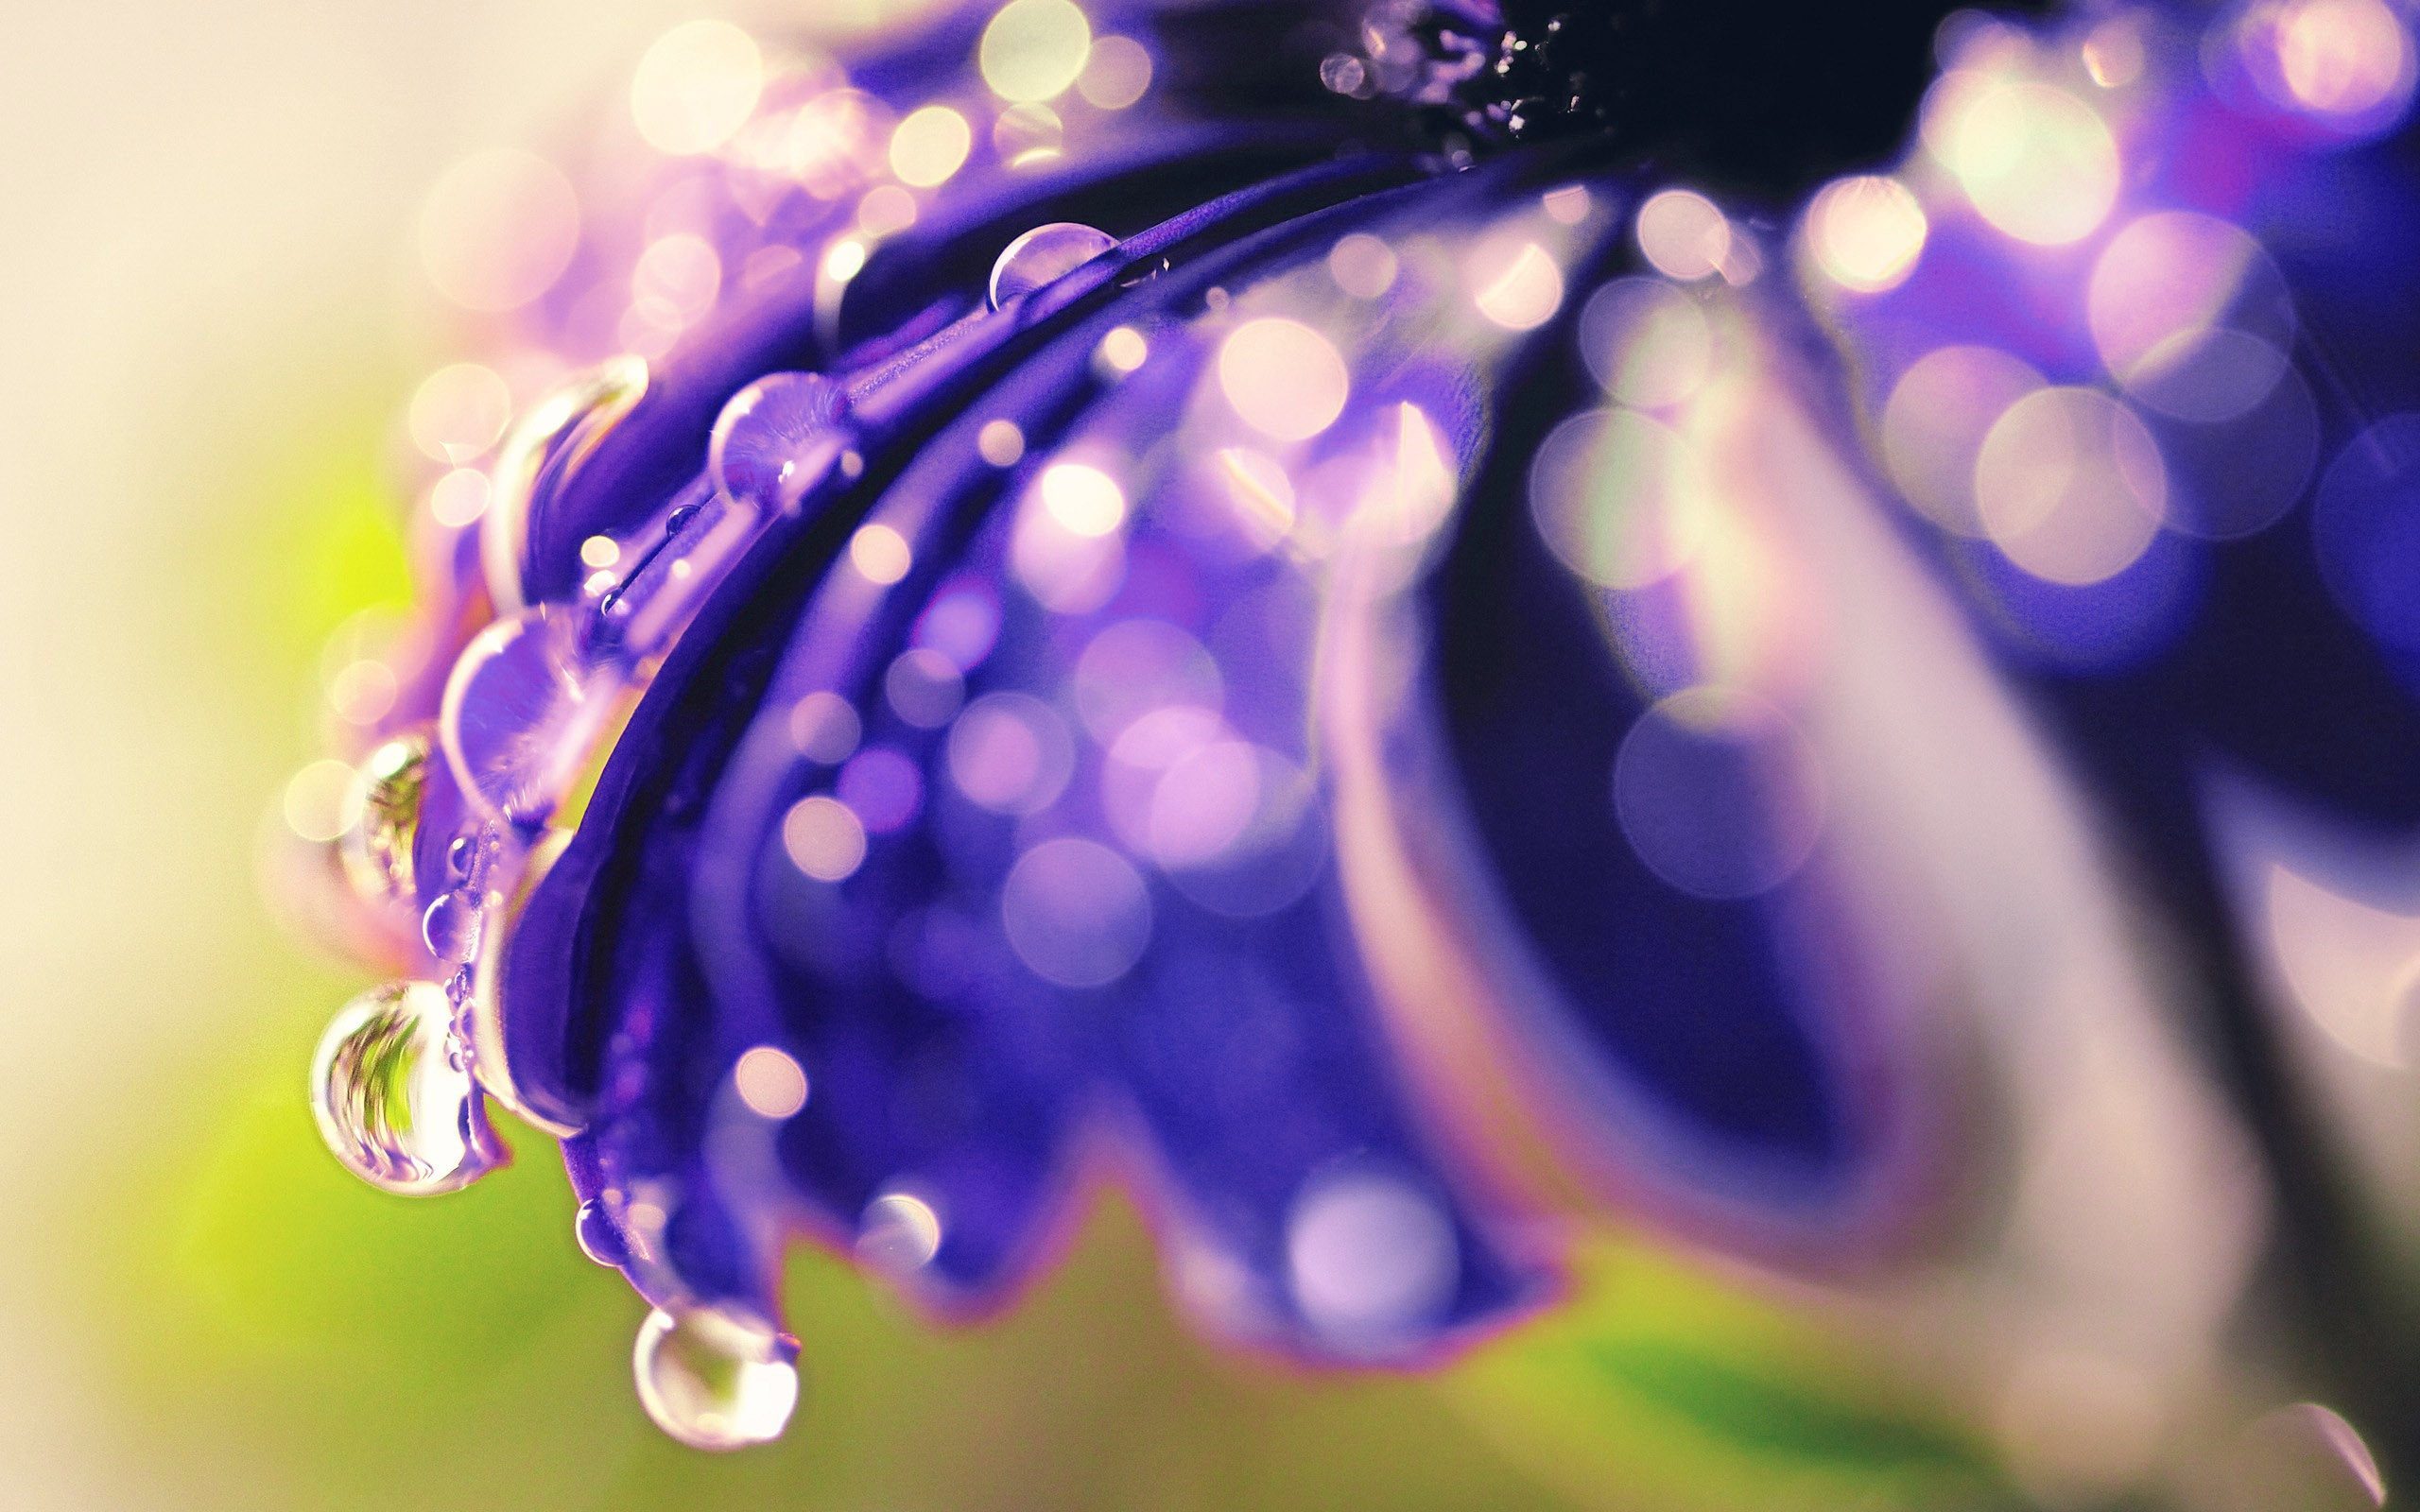 Eyes Of A Dragonfly Nature Dew Cute Macro Hd Wallpaper: Drops Of Morning Dew On A Flower Wallpaper